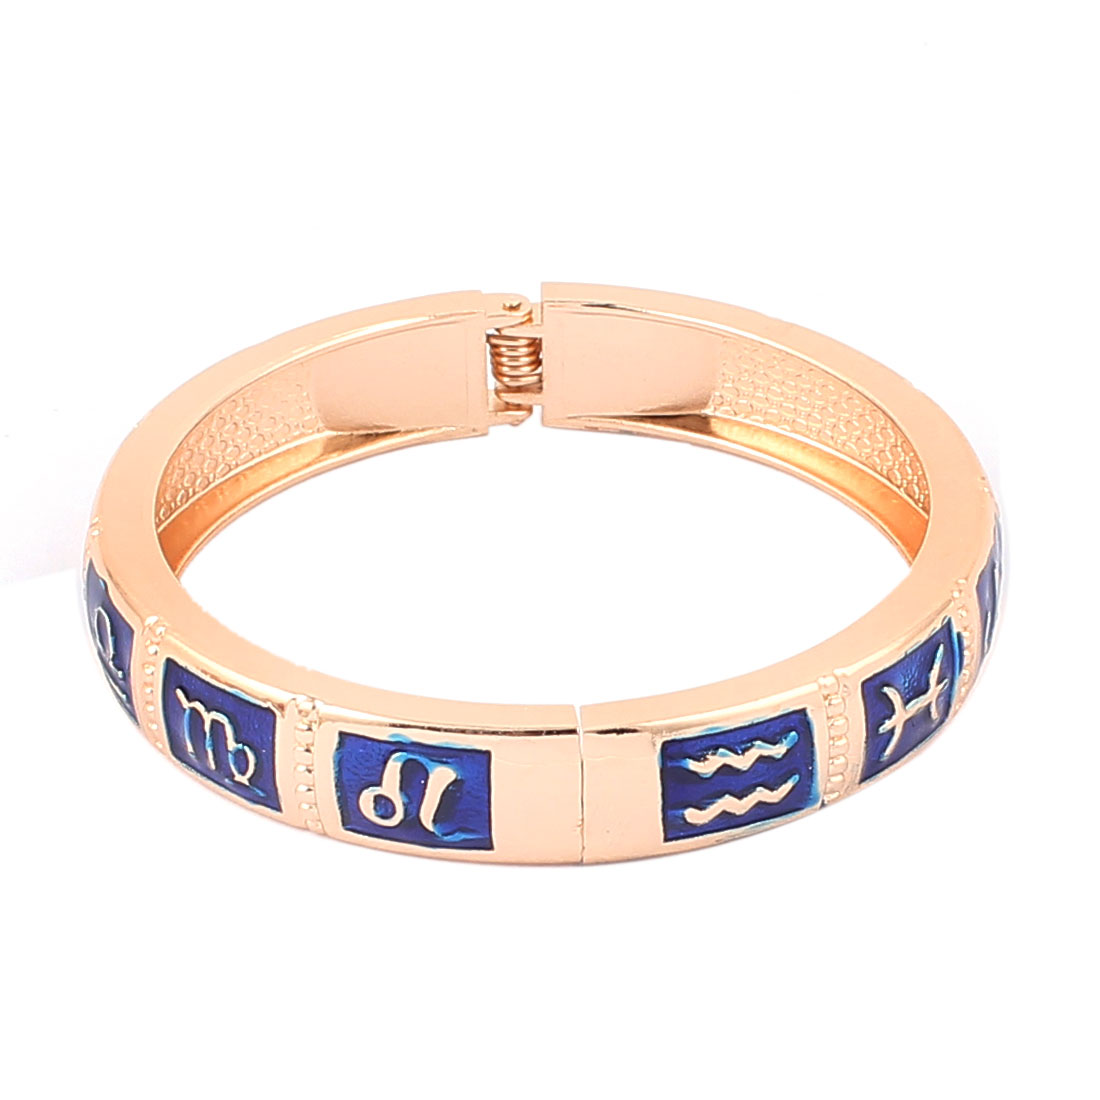 "Round Wrist Gold Tone Metal 12 Constellations Pattern Bracelet Blue Enamel 0.4"" Width"